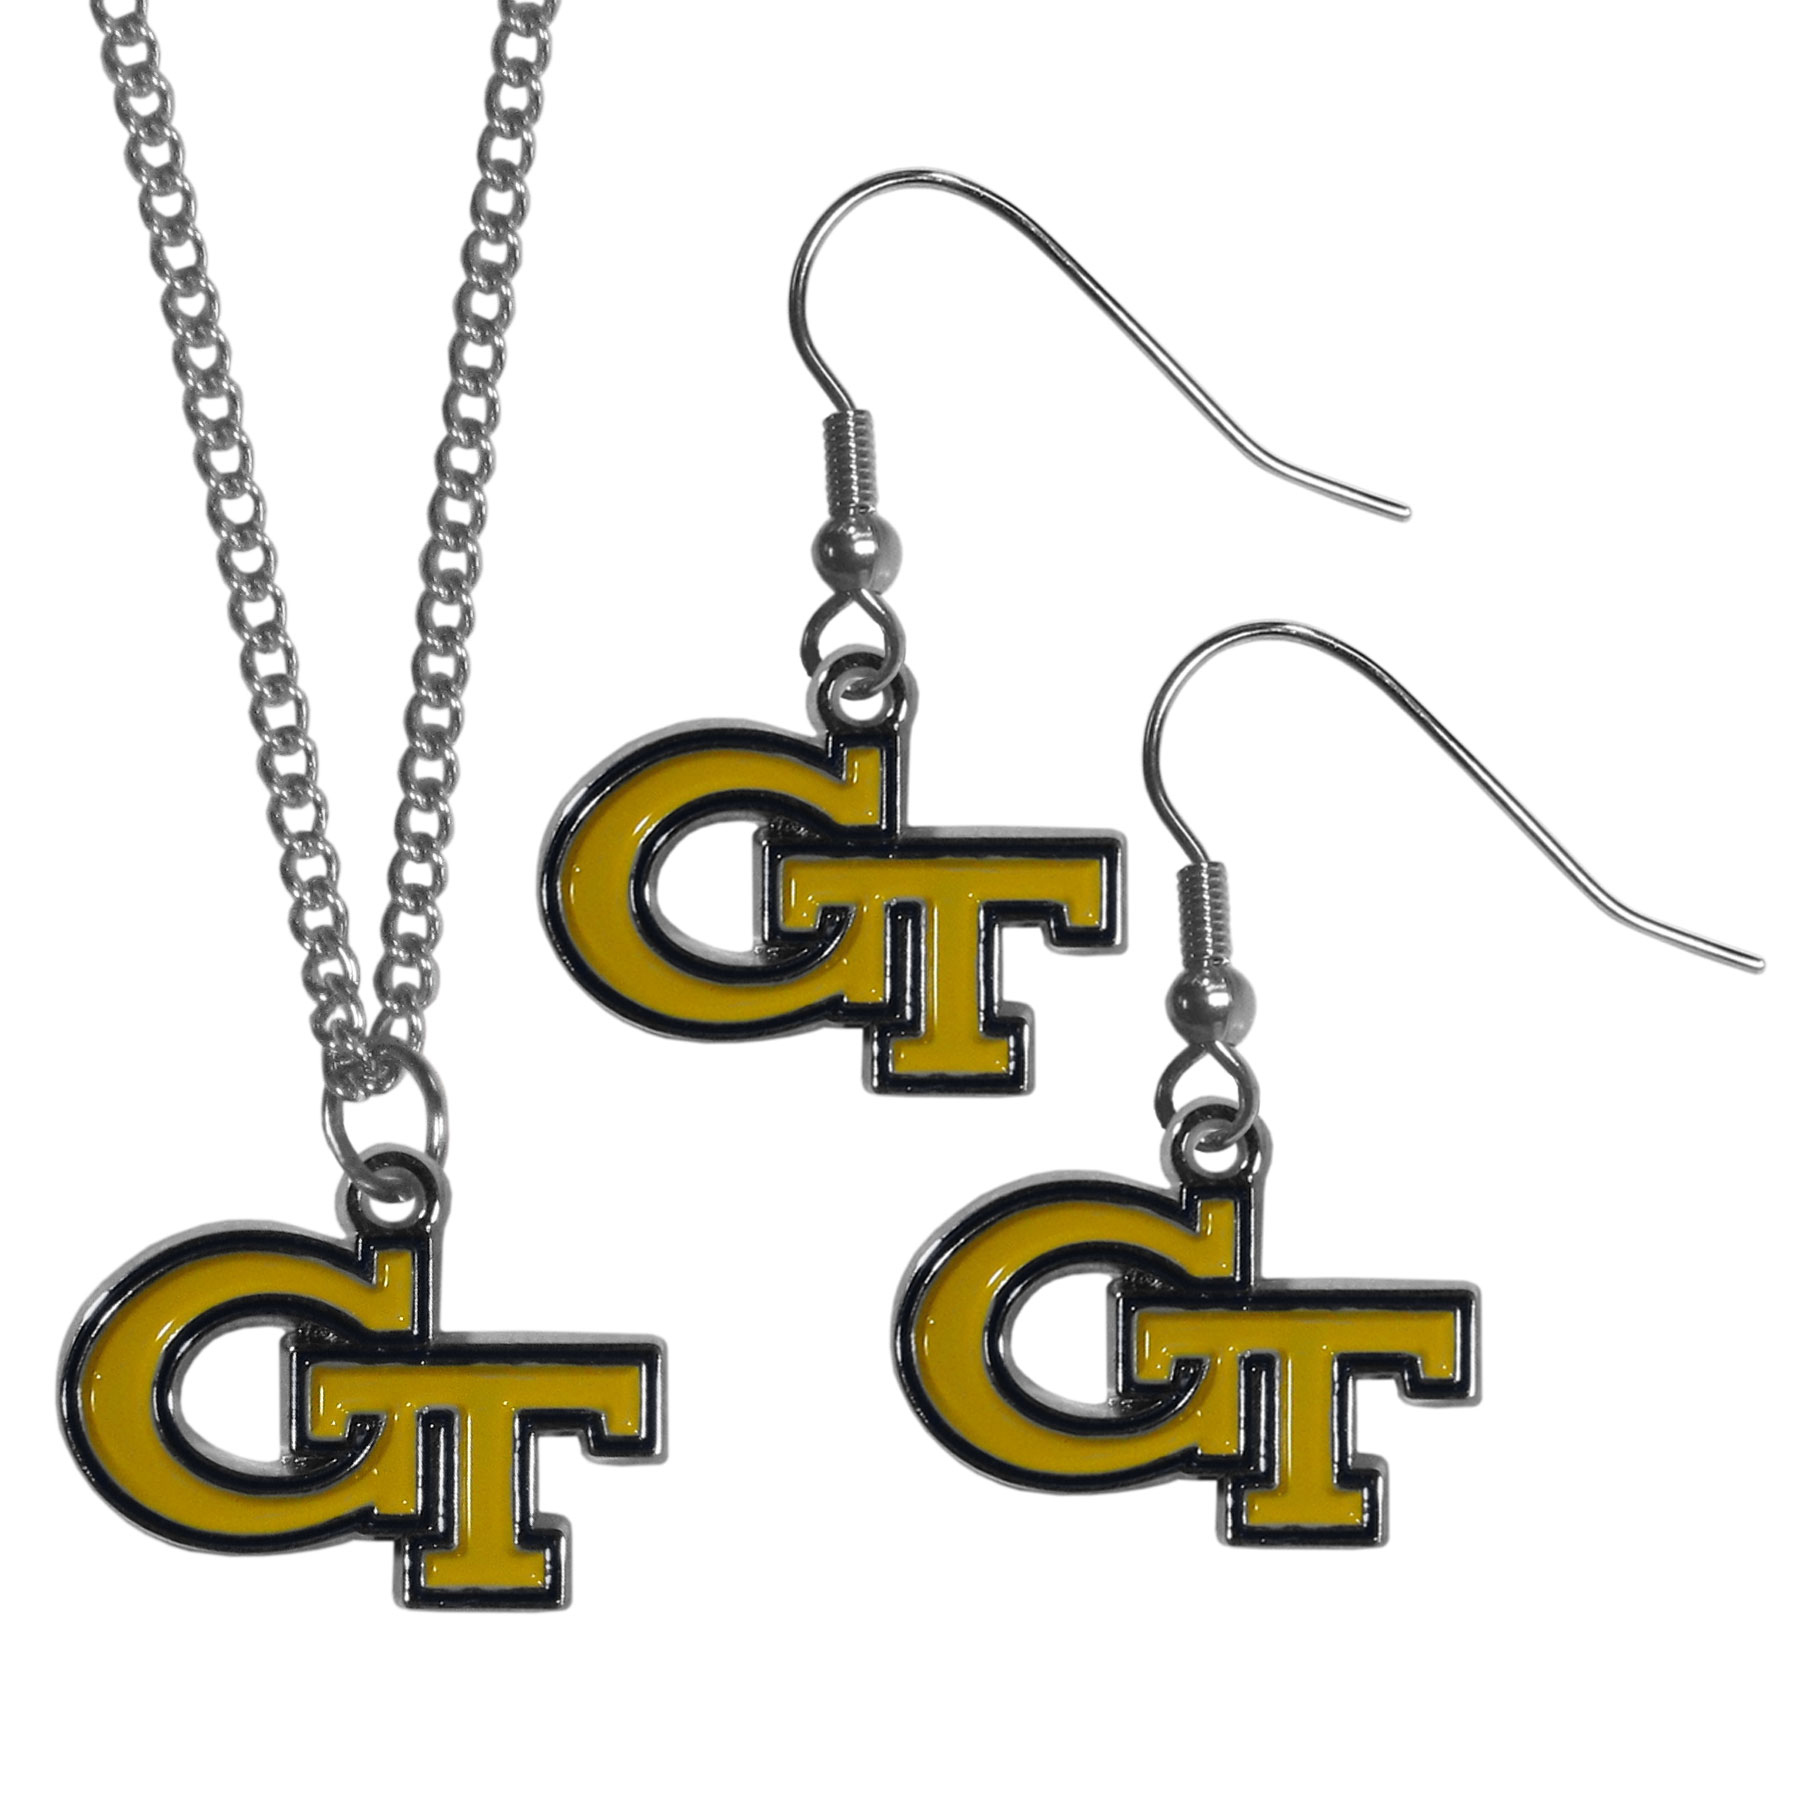 Georgia Tech Yellow Jackets Dangle Earrings and Chain Necklace Set - This classic jewelry set contains are most popular Georgia Tech Yellow Jackets dangle earrings and 22 inch chain necklace. The trendy, dangle earrings are lightweight and feature a fully cast metal team charm with enameled team colors. The matching necklace completes this fashion forward combo and is a spirited set that is perfect for game day but nice enough for everyday.